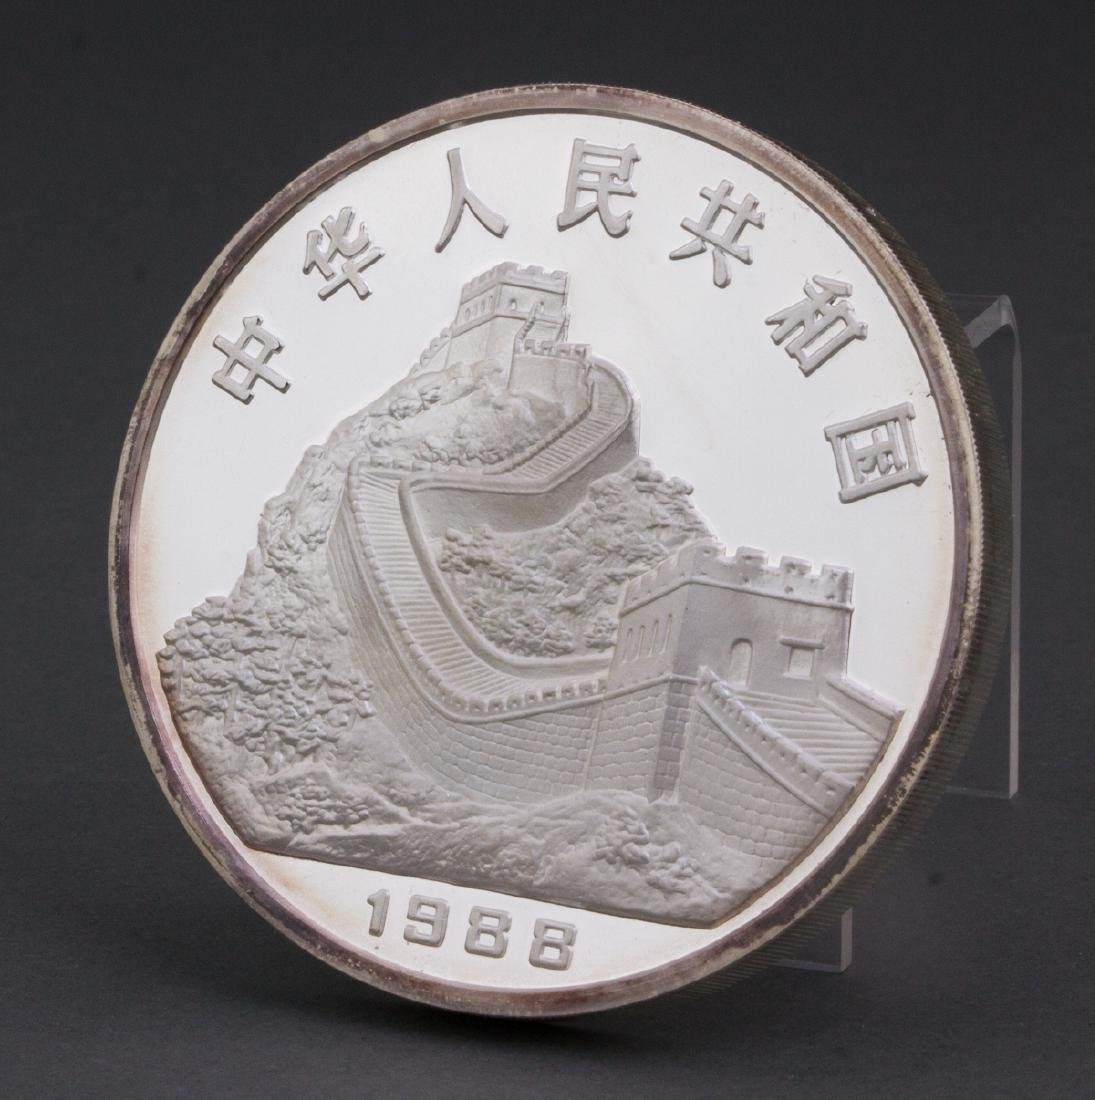 Chinese Large Silver Coin 100 Yuan w/ Certificate - 5